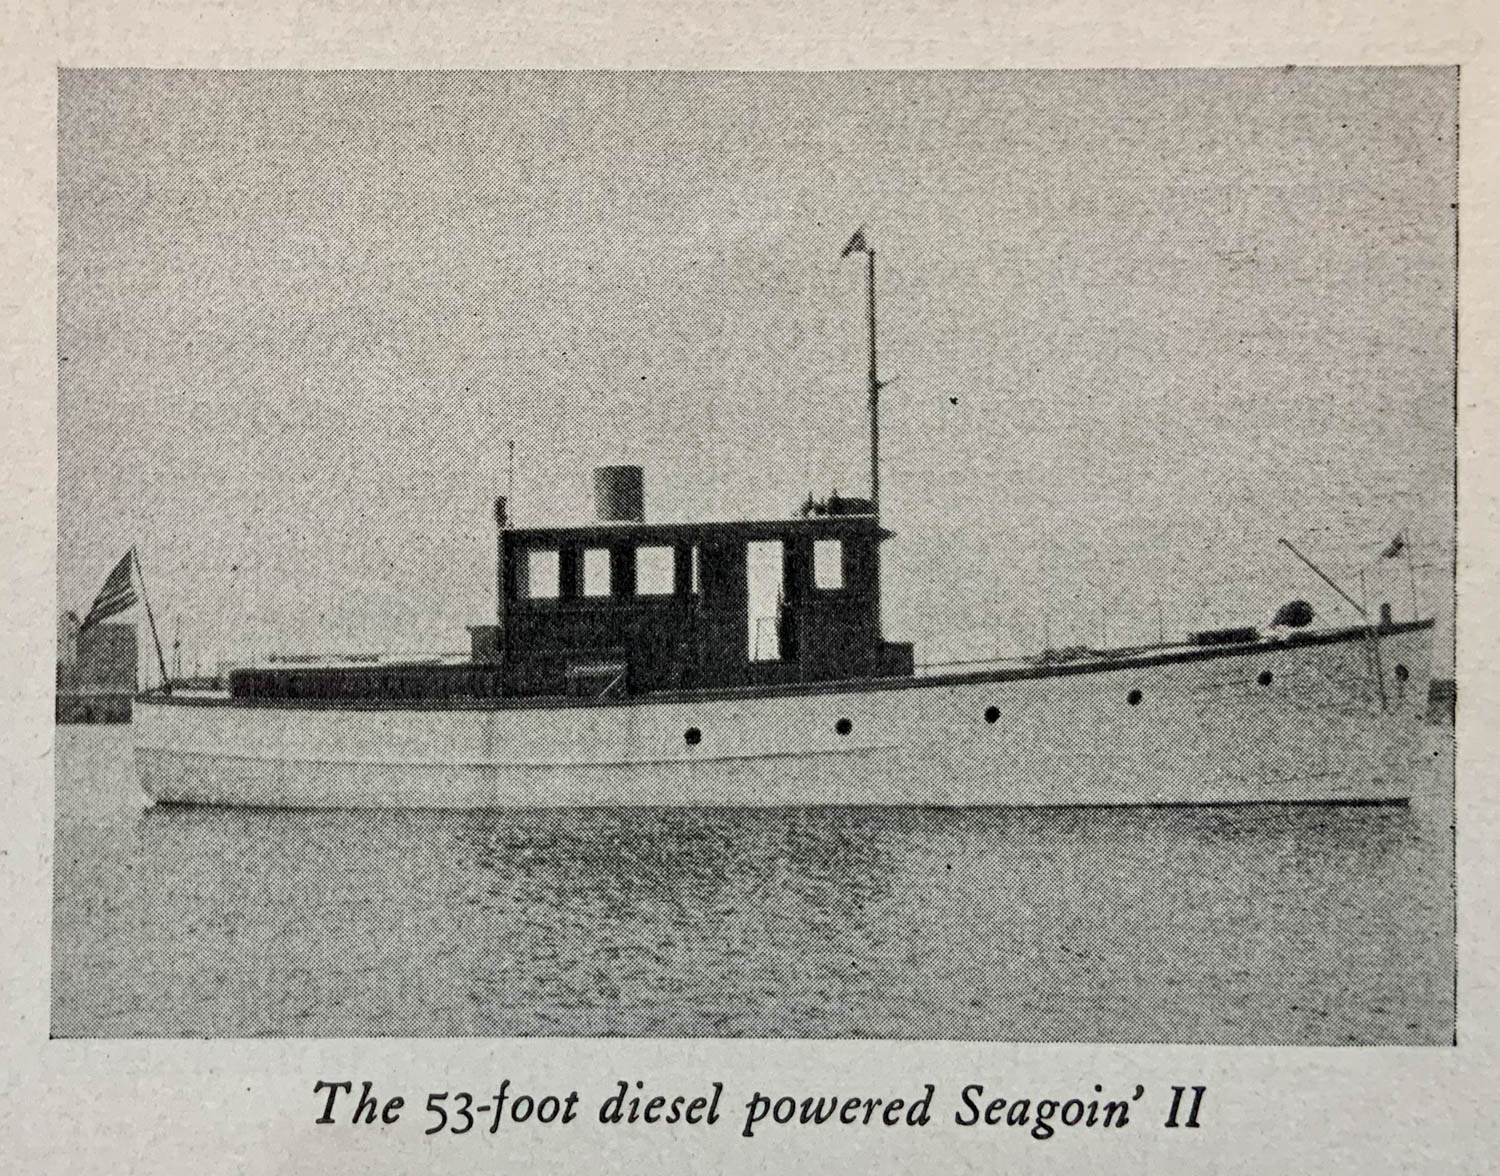 Depressed Cruise 53-foot Seagoin' II